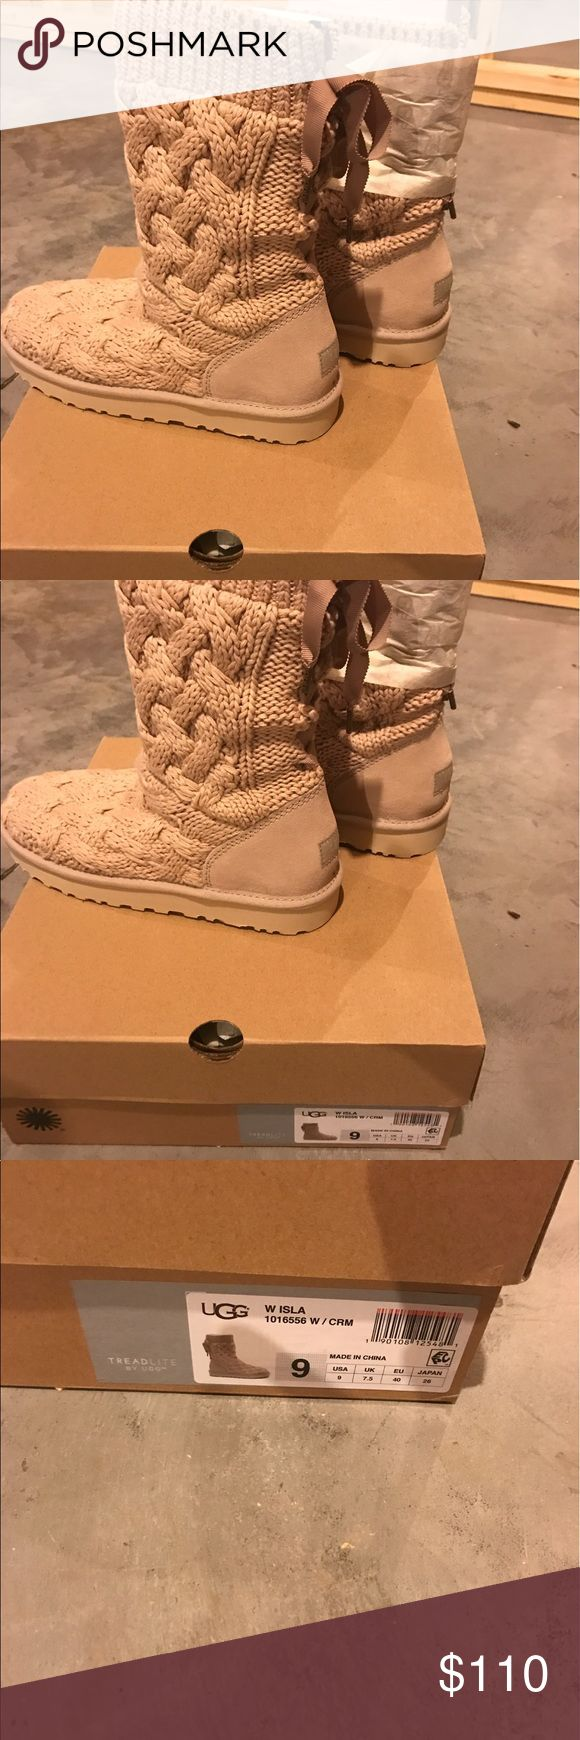 Women's UGG boots Brand new in box Women's UGG boots, authentic, size 9.  Cream color with lace up back.  Gorgeous! UGG Shoes Ankle Boots & Booties